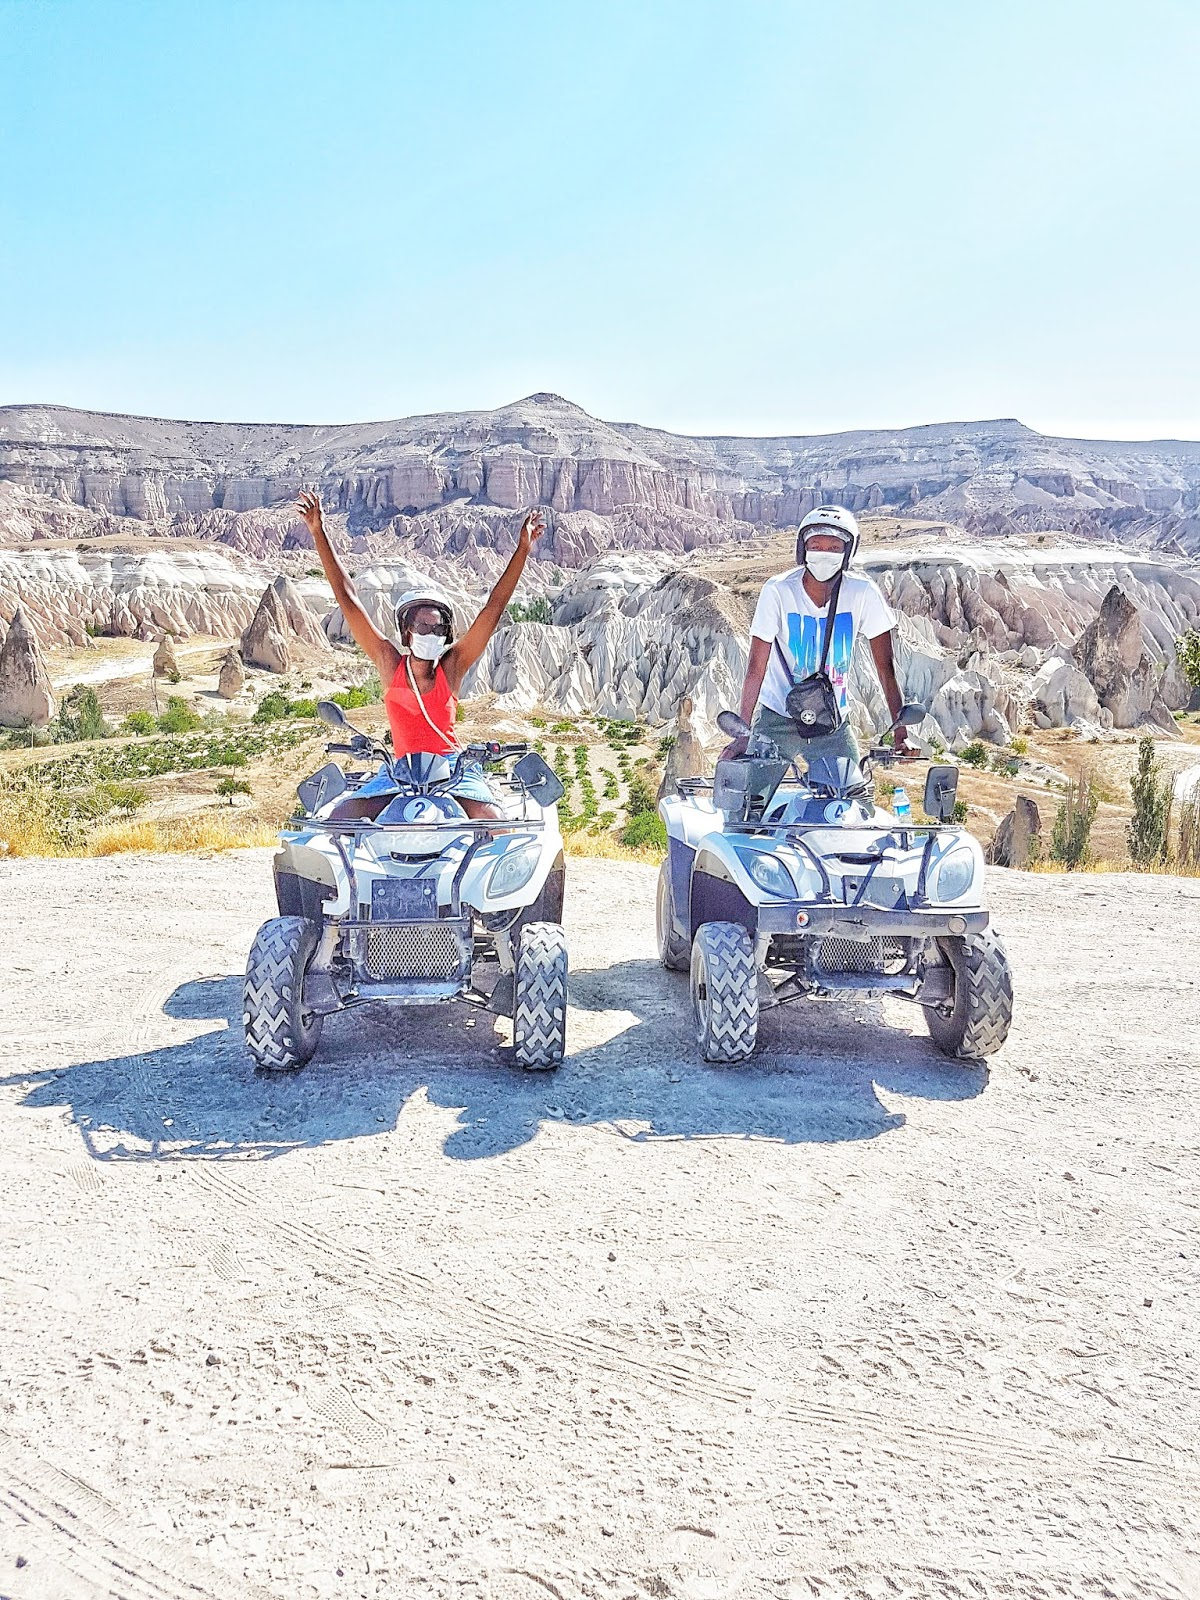 Cappadocia ATV quad biking excursion